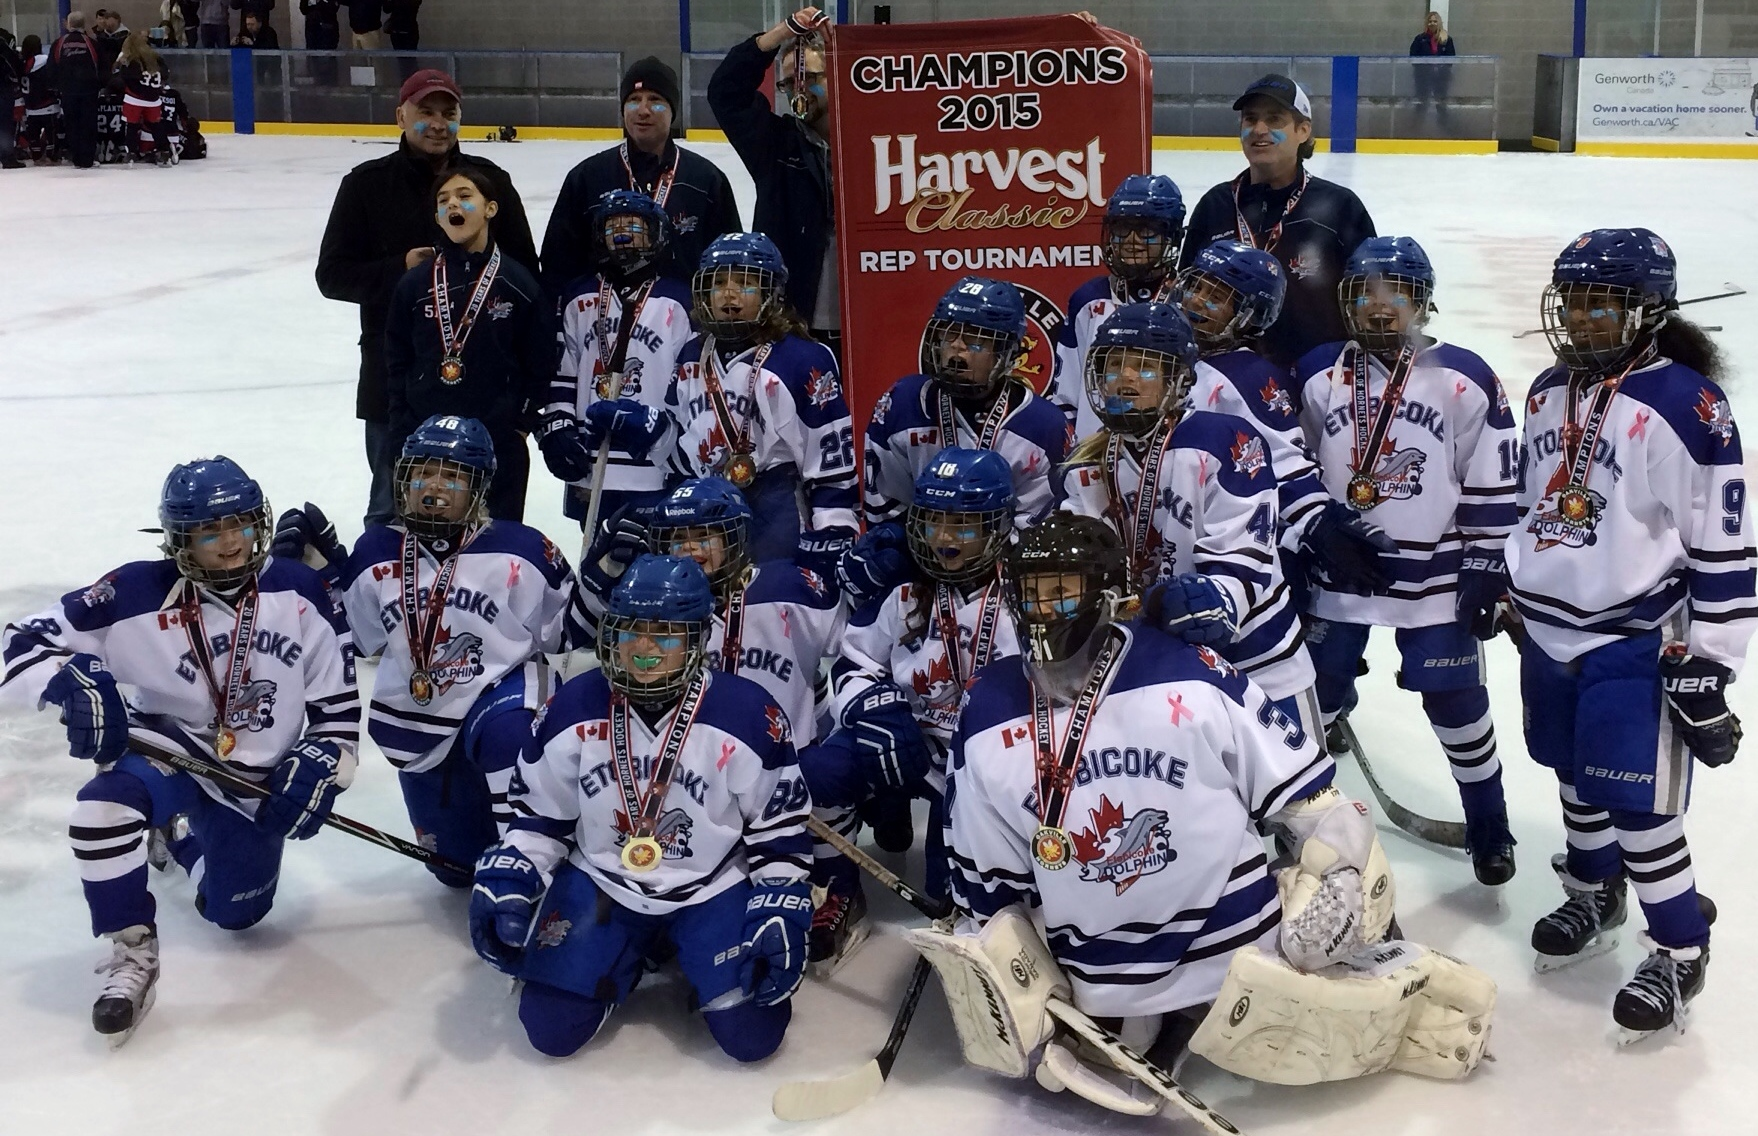 Etobicoke Dolphins ATOM BB win GOLD at the Oakville Harvest Classic!